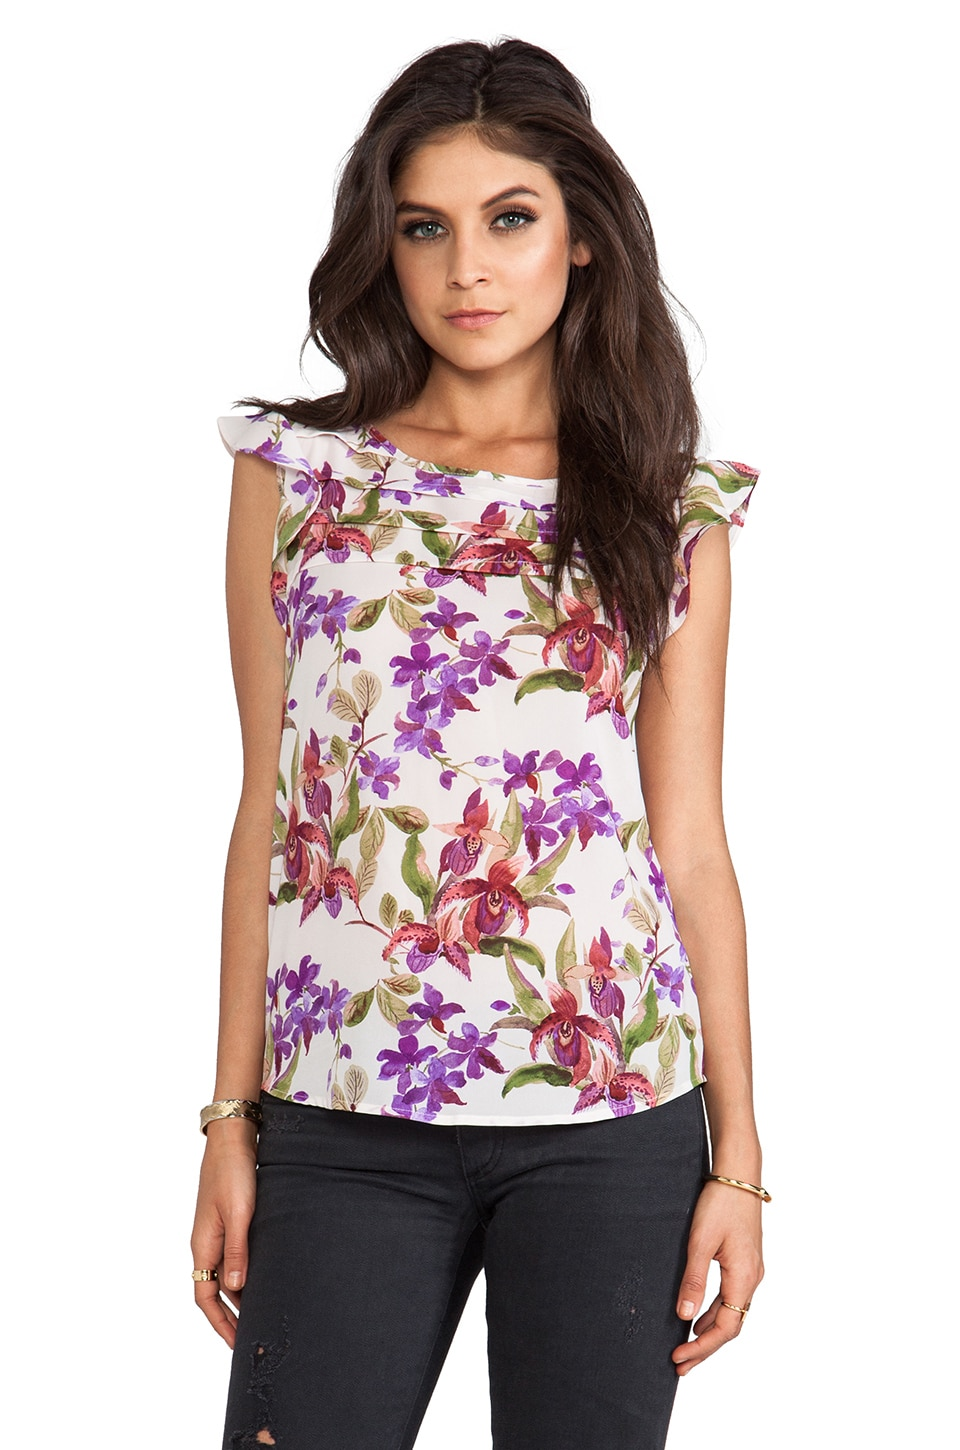 BB Dakota Jilles Orchid Printed Blouse in White Cap